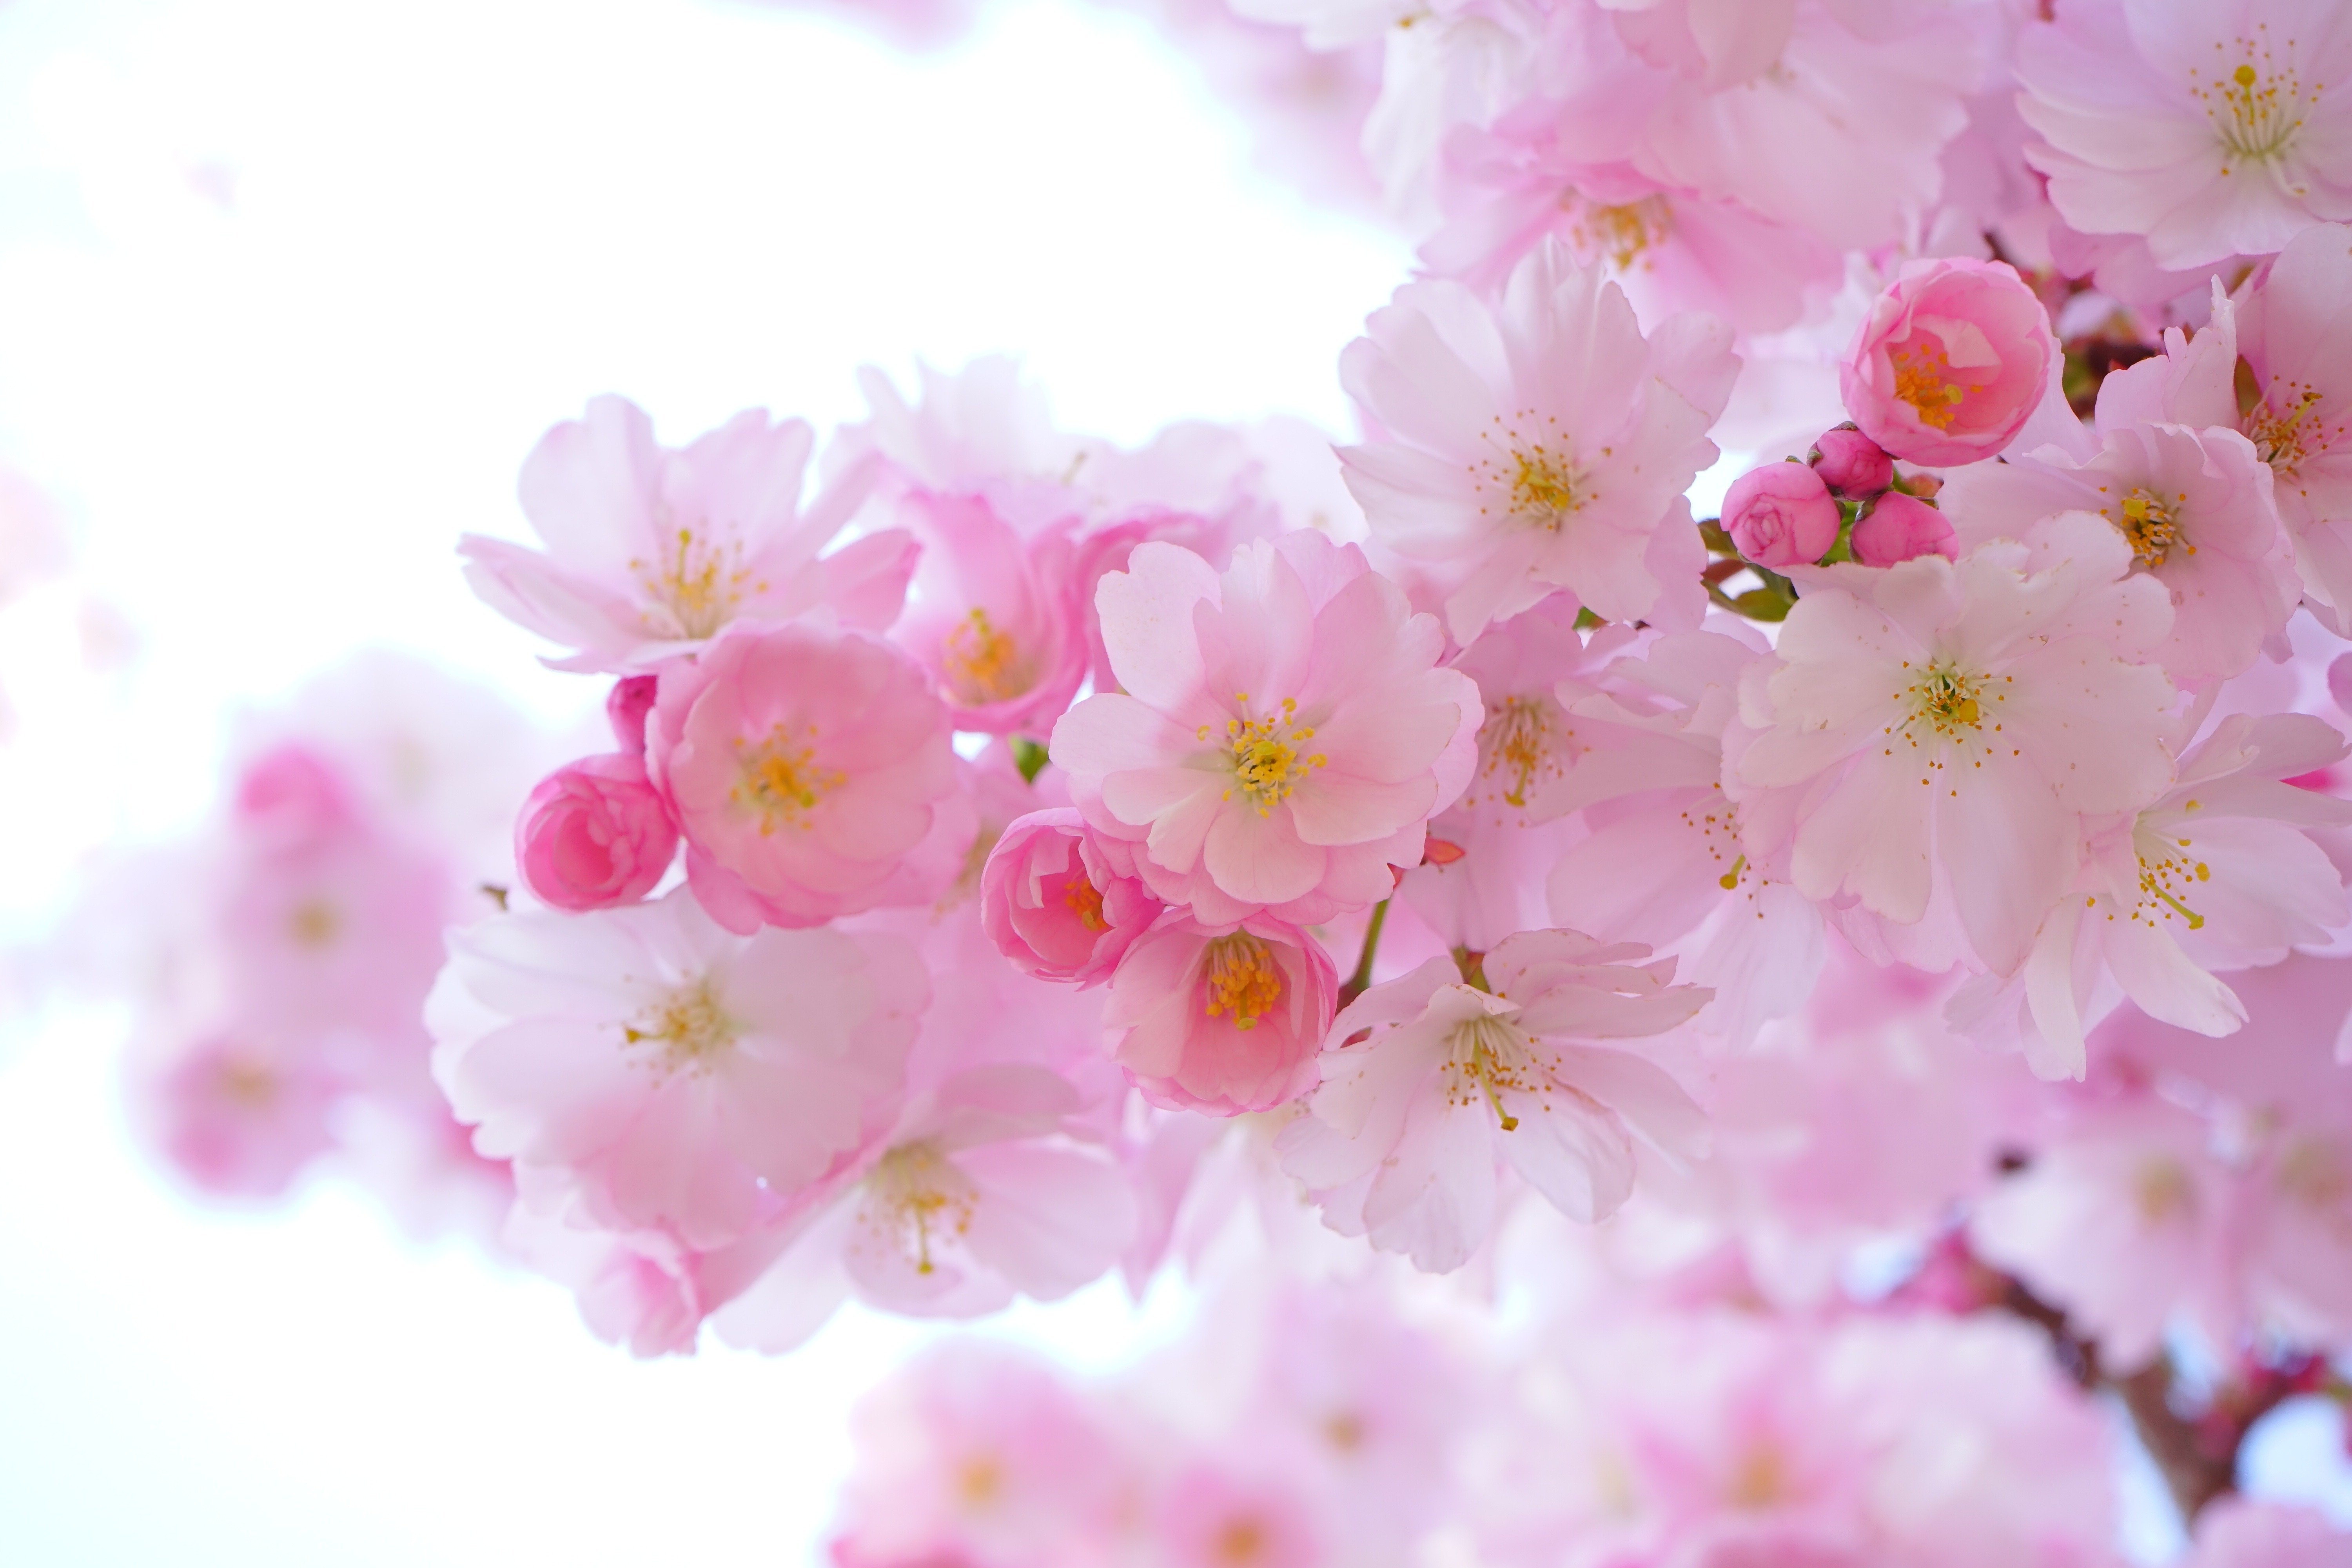 Color Palette – japanese cherry trees flowers spring –  #dfbcd3, #a34b66, #c27792, #be7c64, #8c748c – Pink Peony color, Raspberry Patch color, Watermelon Pink color, Himalayan Salt color, Self Powered color